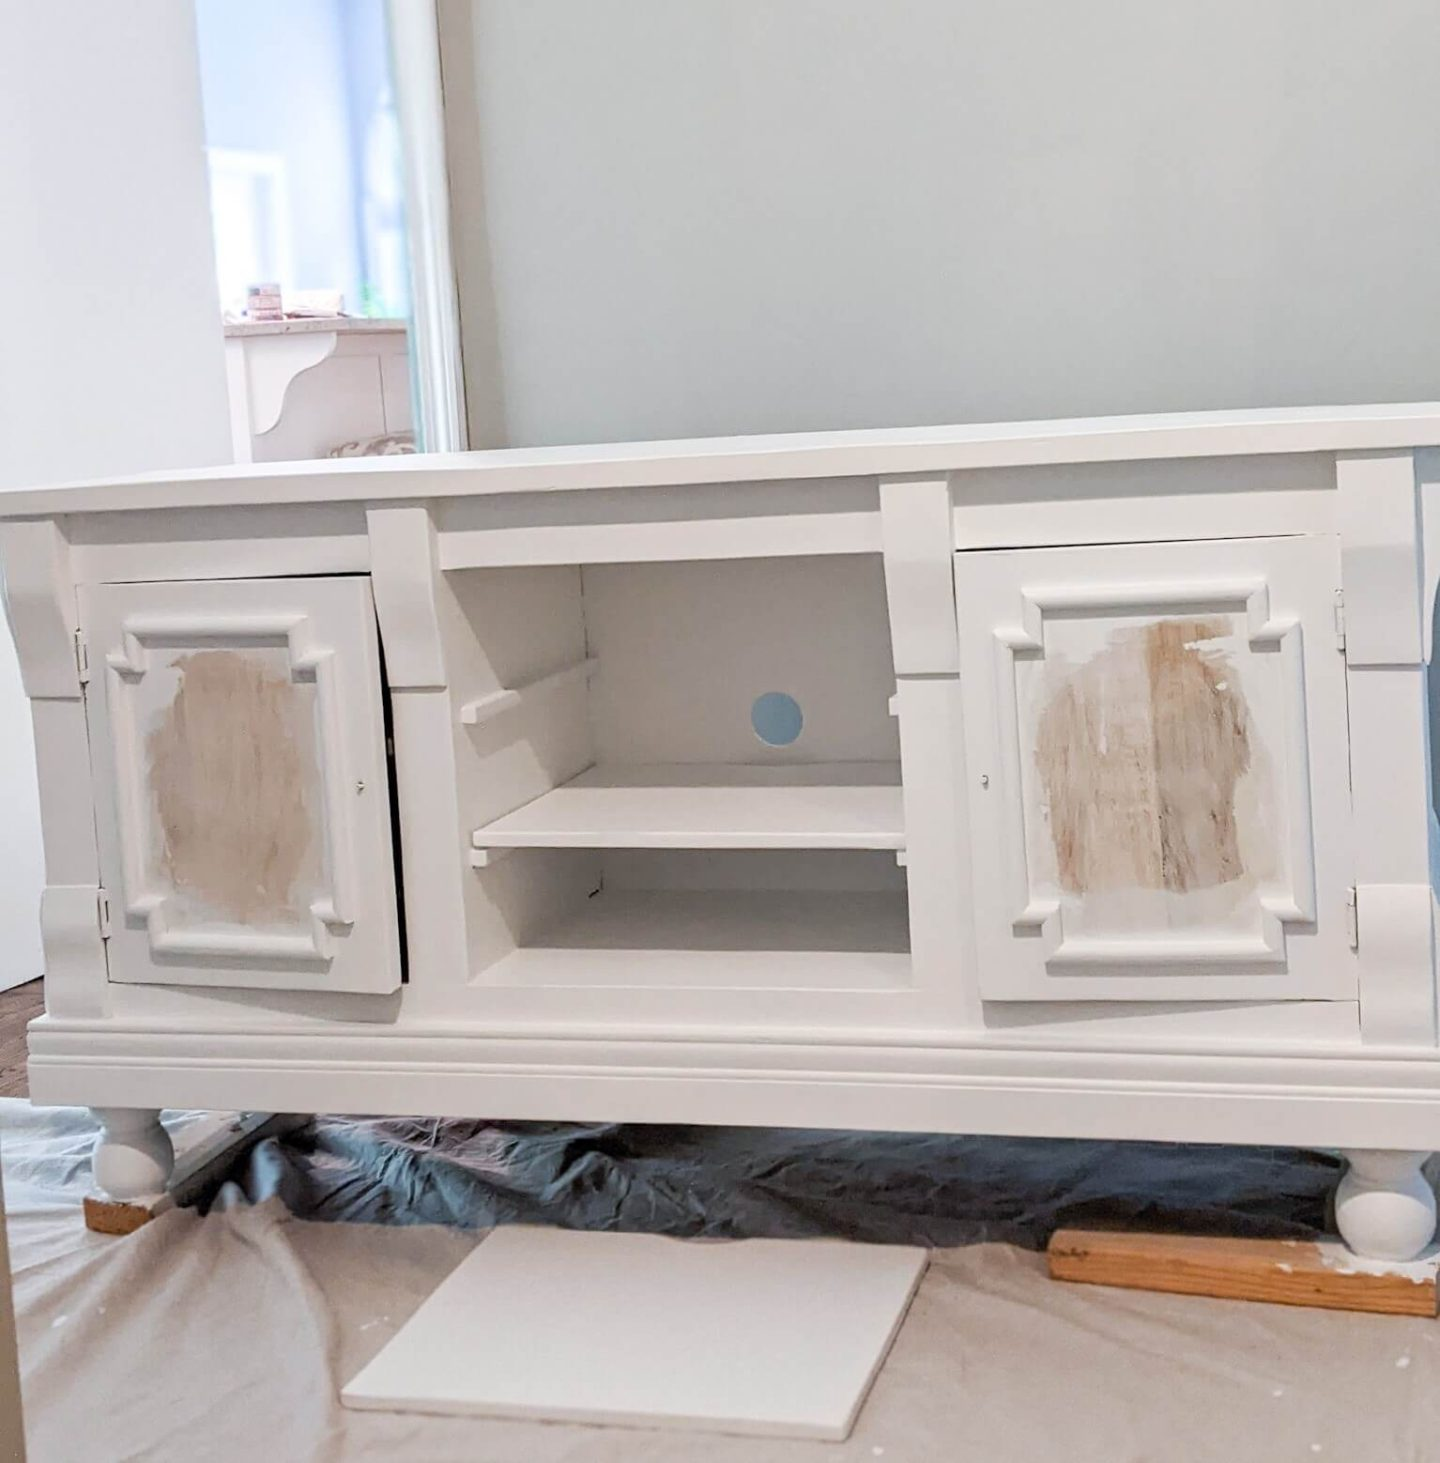 The TV console fully painted, ready for the grasscloth application